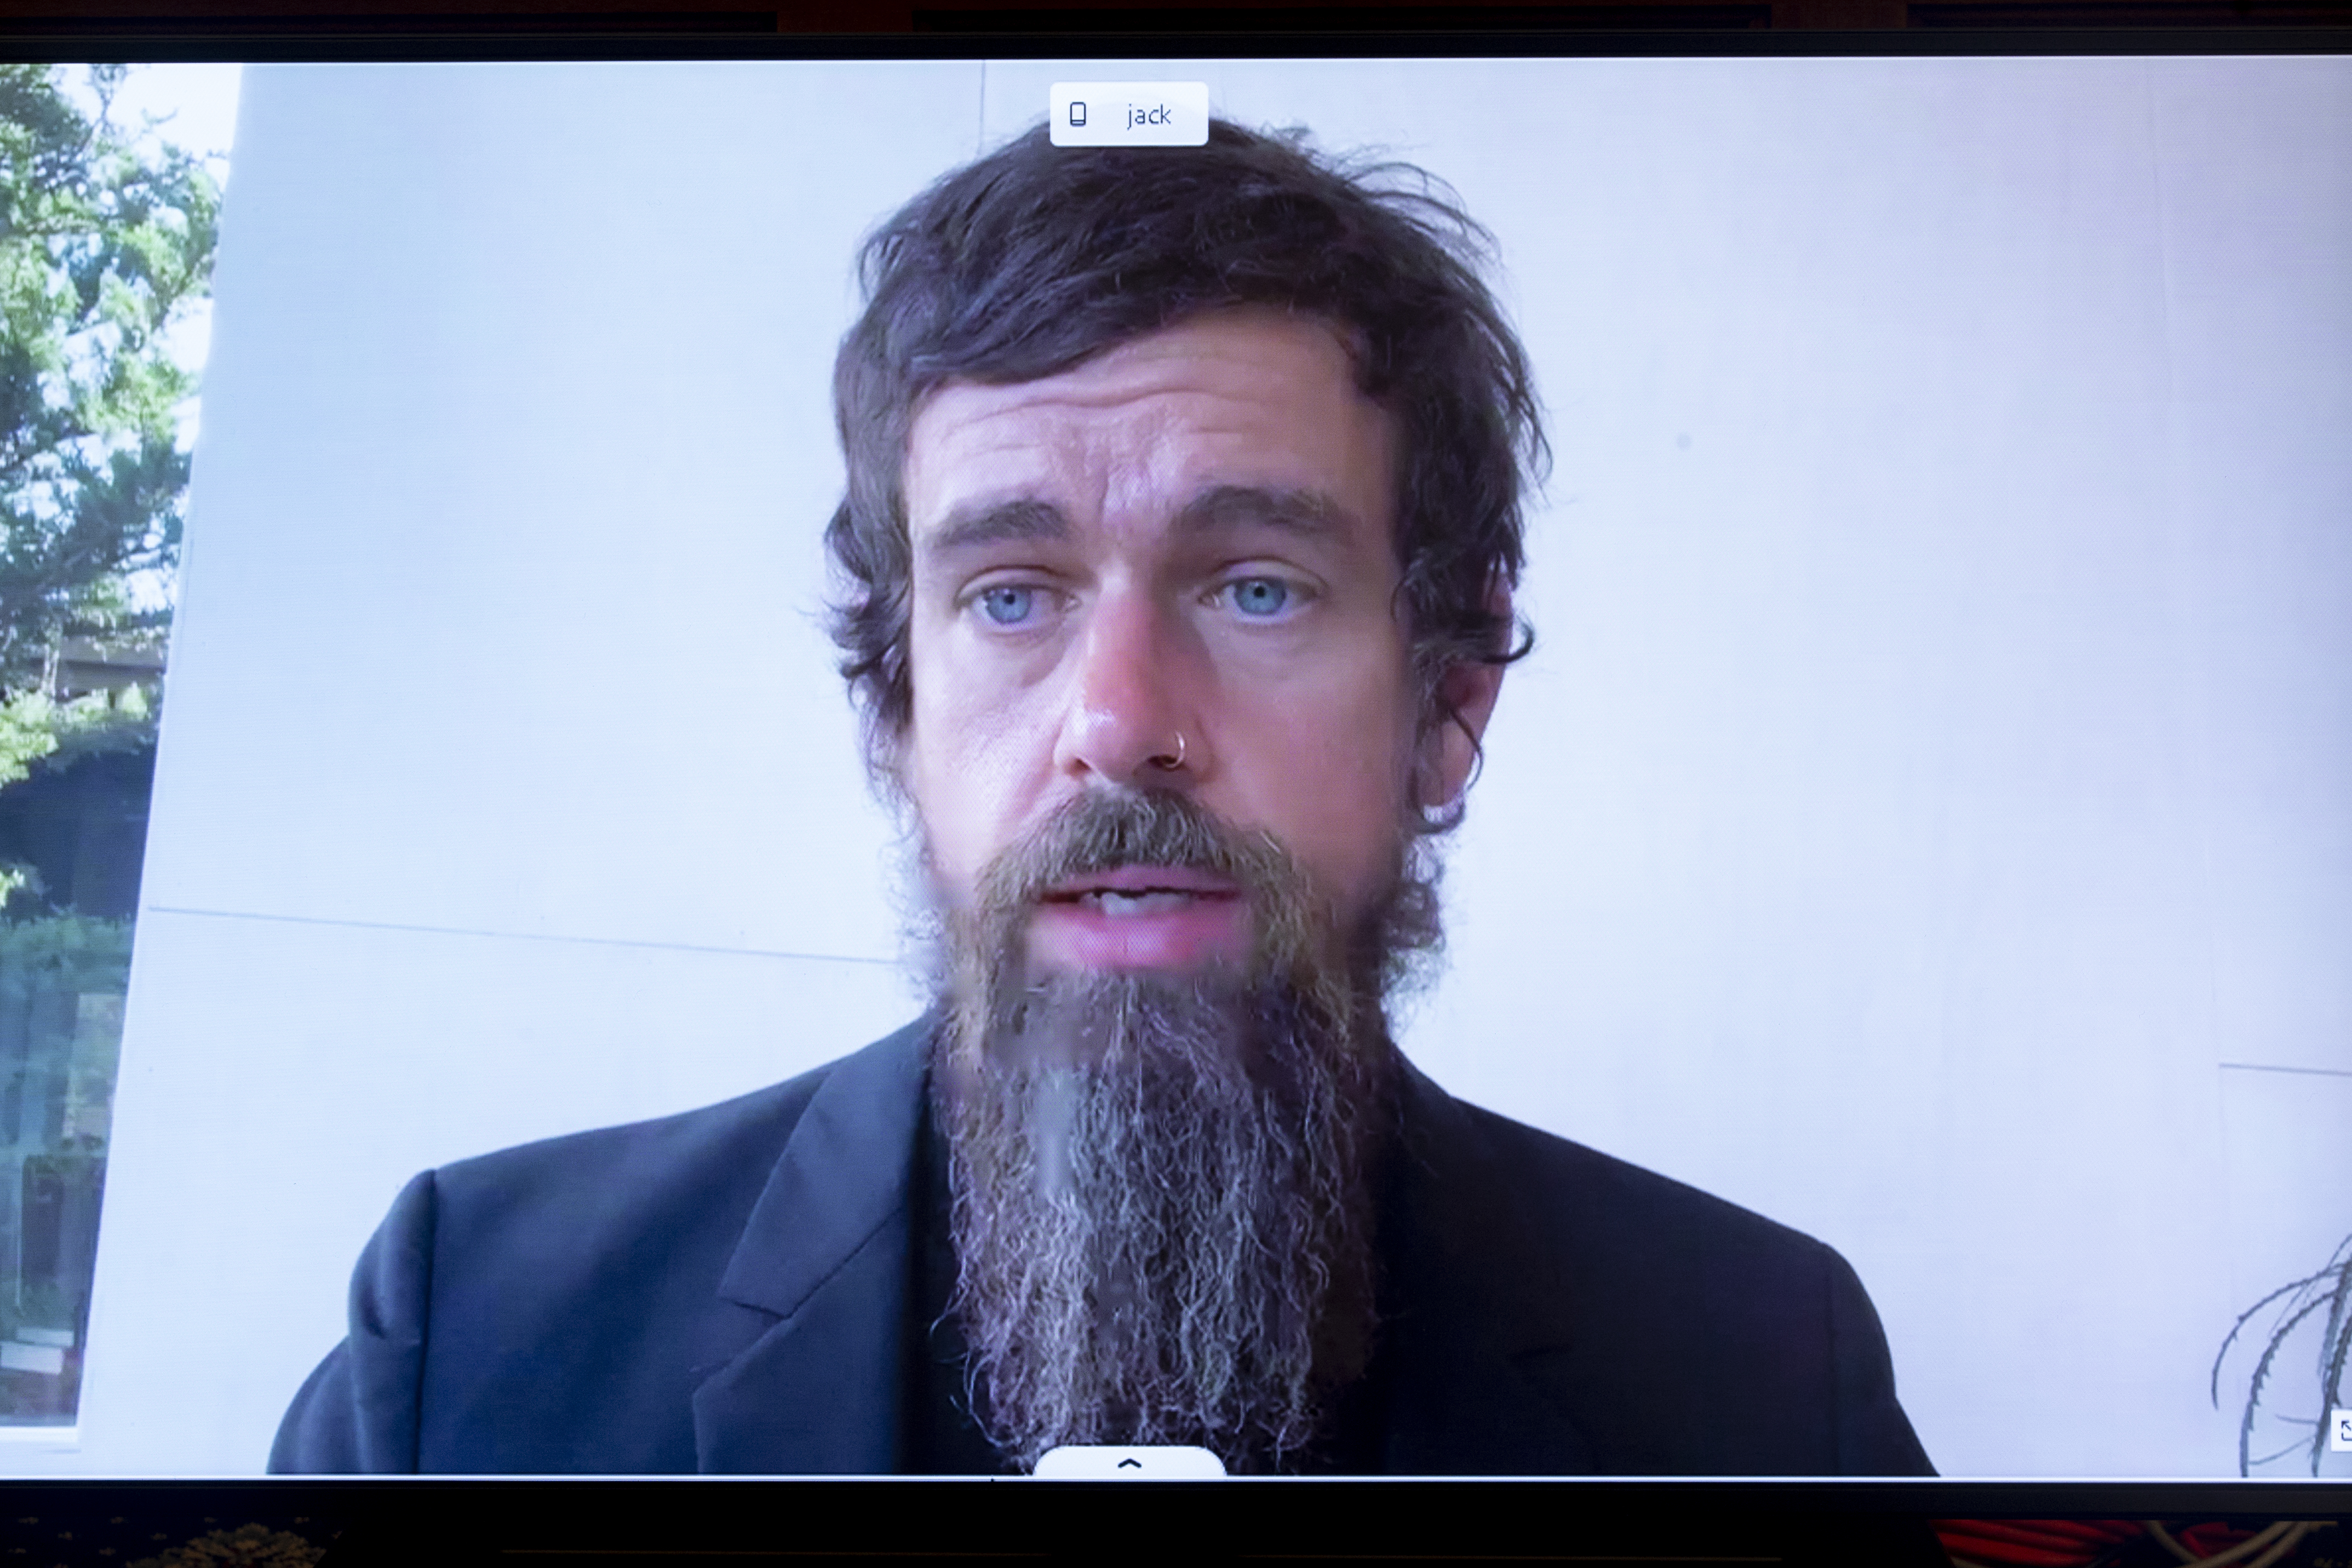 Twitter CEO Jack Dorsey, a man with bright blue eyes, brown hair and a wiry hipster beard, speaking on a monitor.